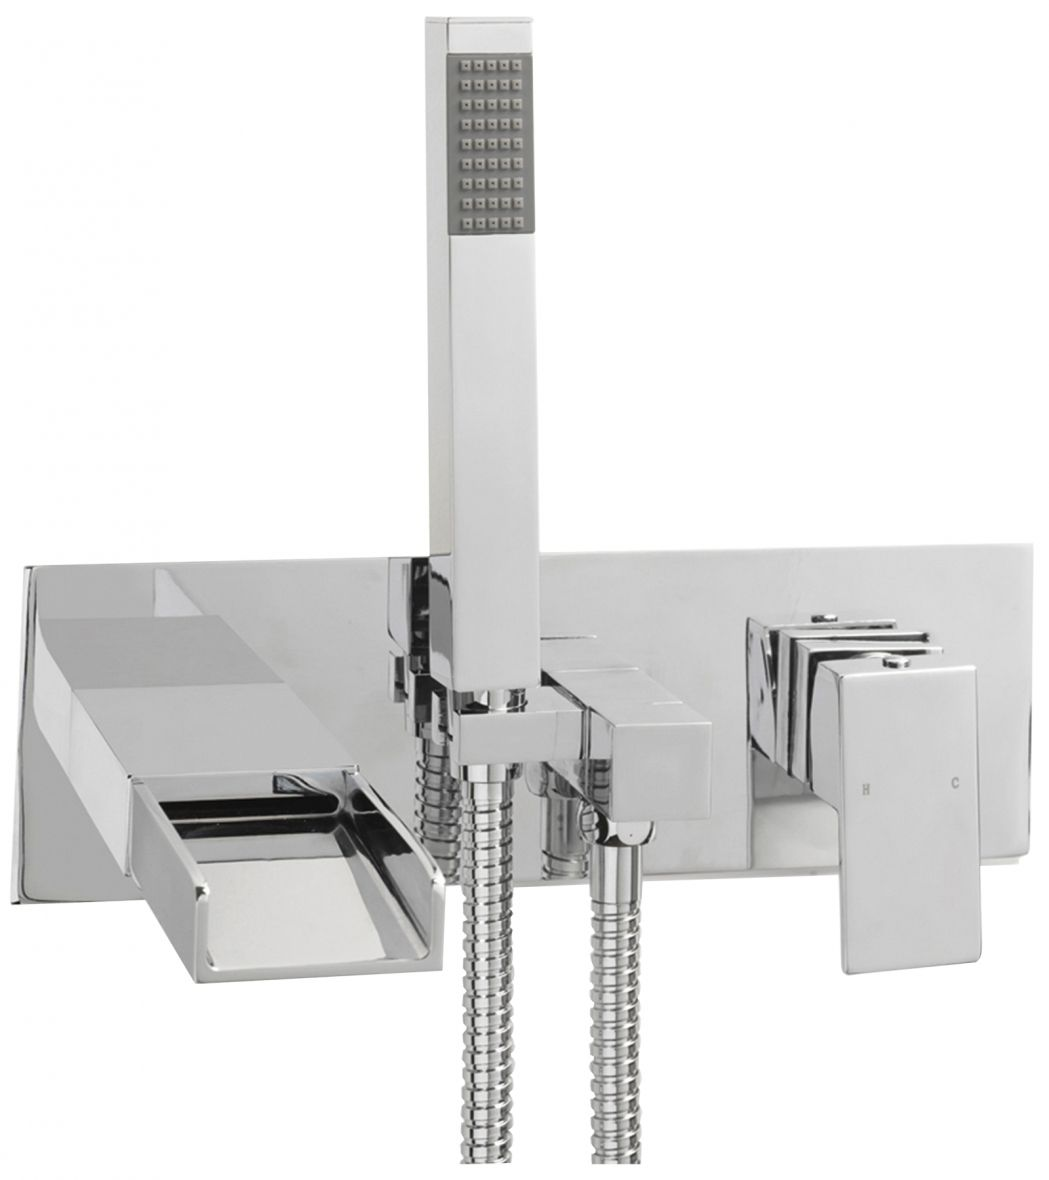 Bath Mixer Taps With Shower Attachment Bathroom Mirror Cabinet Tavistock Hype Tap And Handset